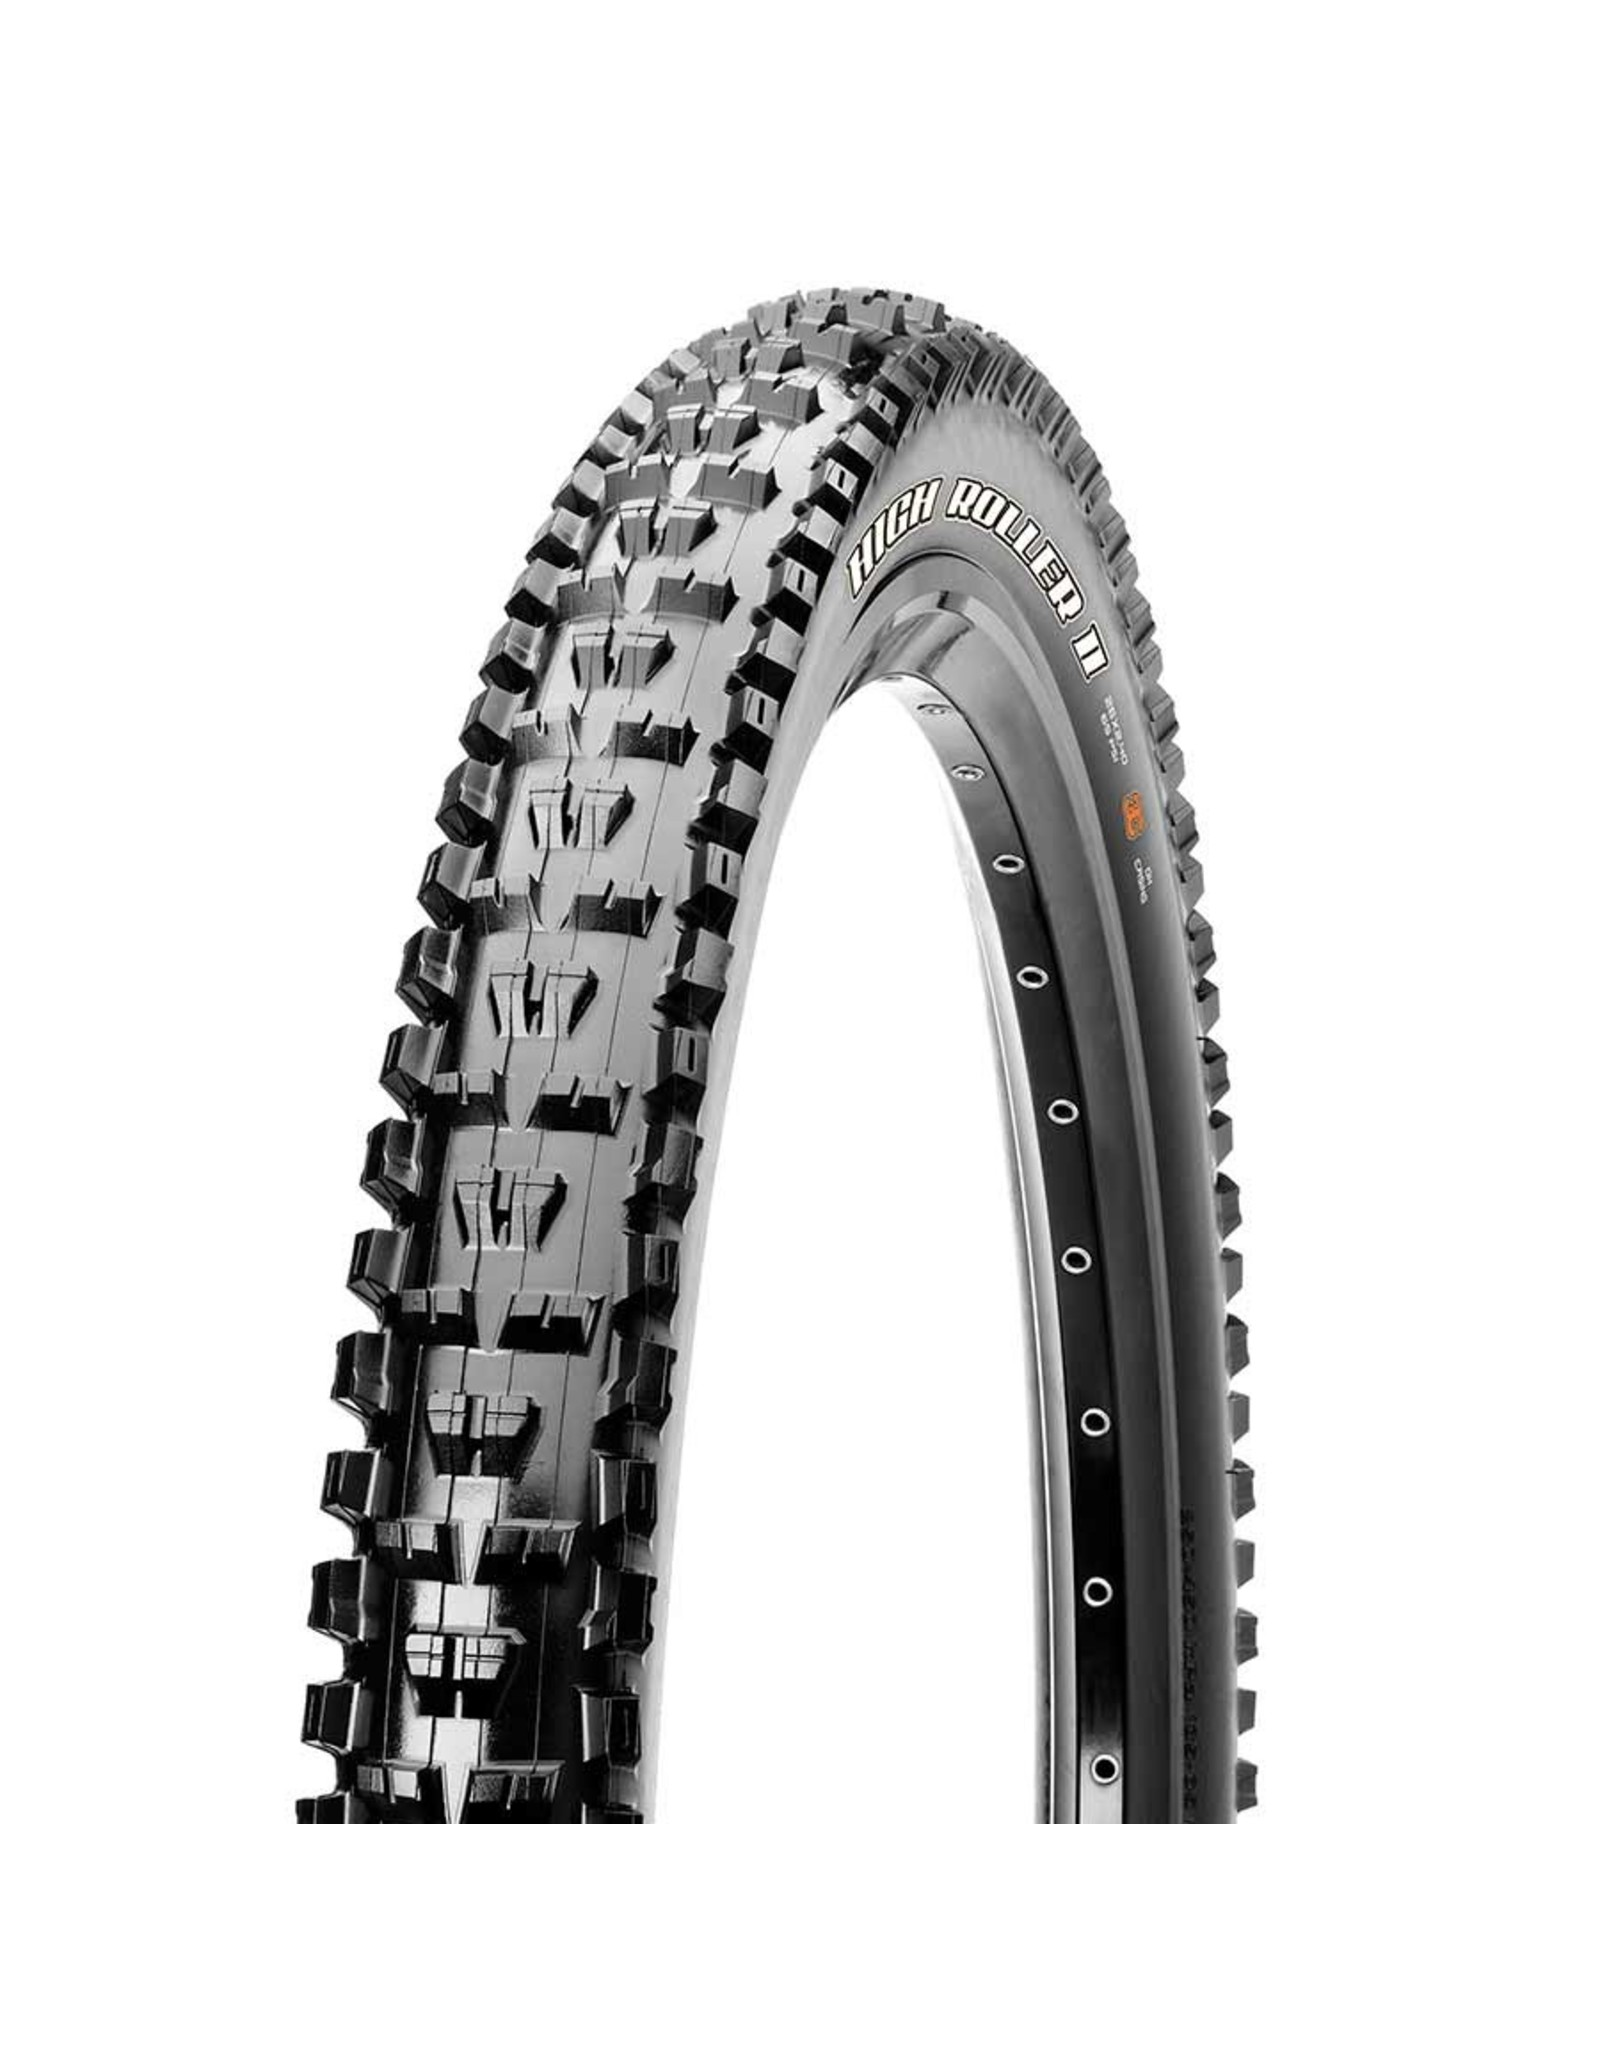 Maxxis, High Roller II, Tire, 27.5''x2.30, Folding, Tubeless Ready, 3C Maxx Terra, EXO, 60TPI, Black